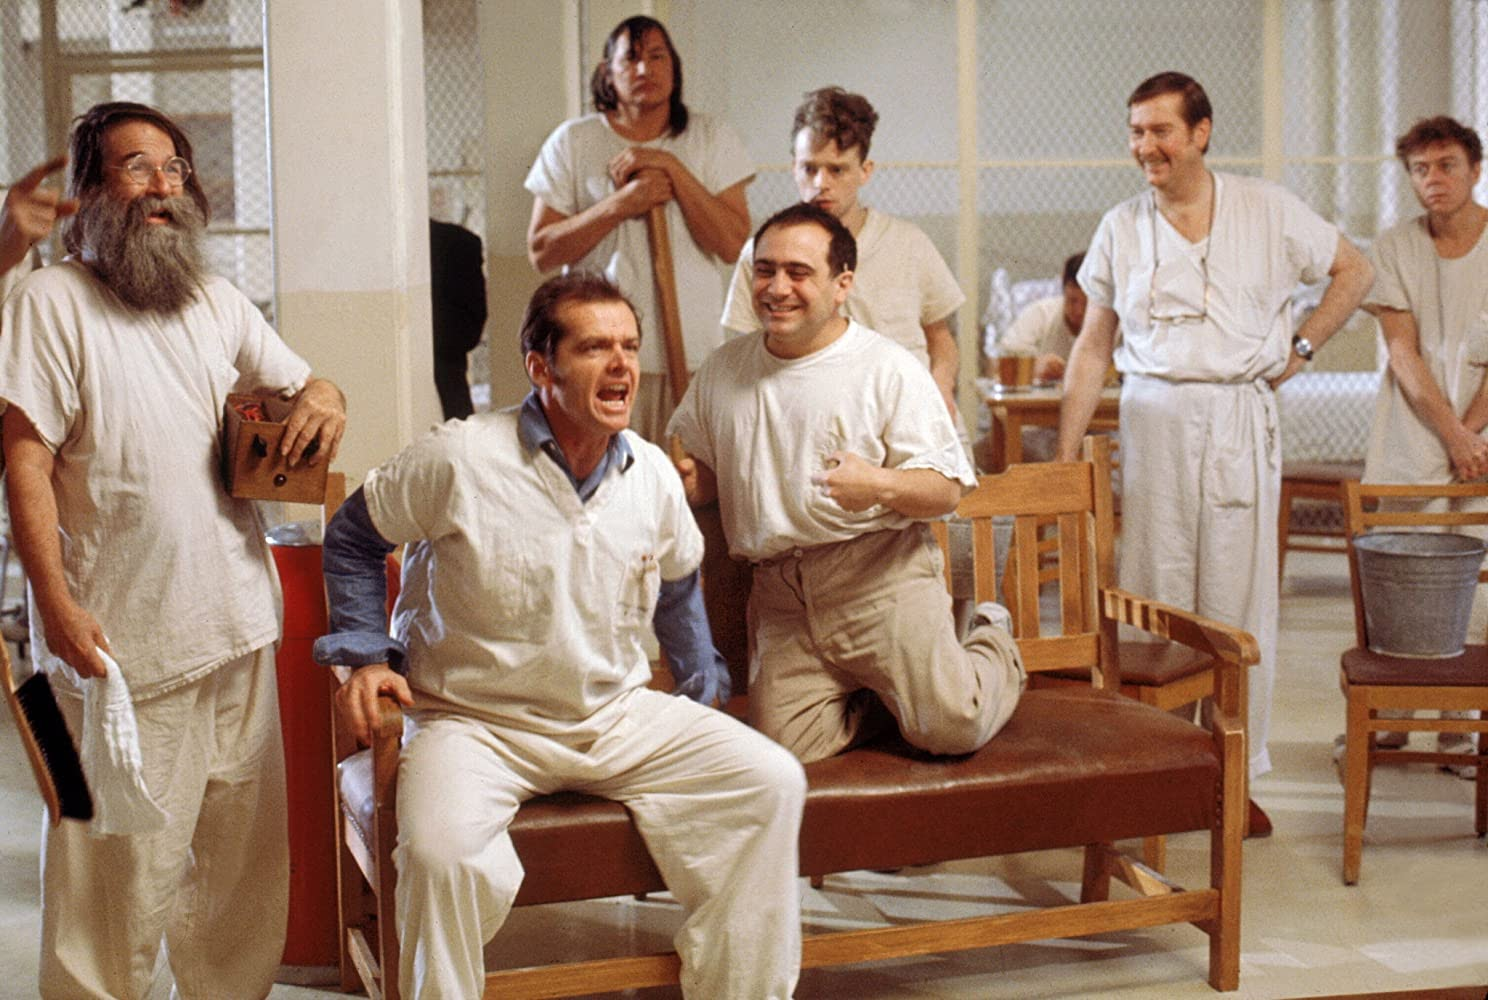 """Pictured is a scene from the movie """"One Flew Over the Cuckoo's Nest,"""" which contains dramatic portrayals of ECT."""